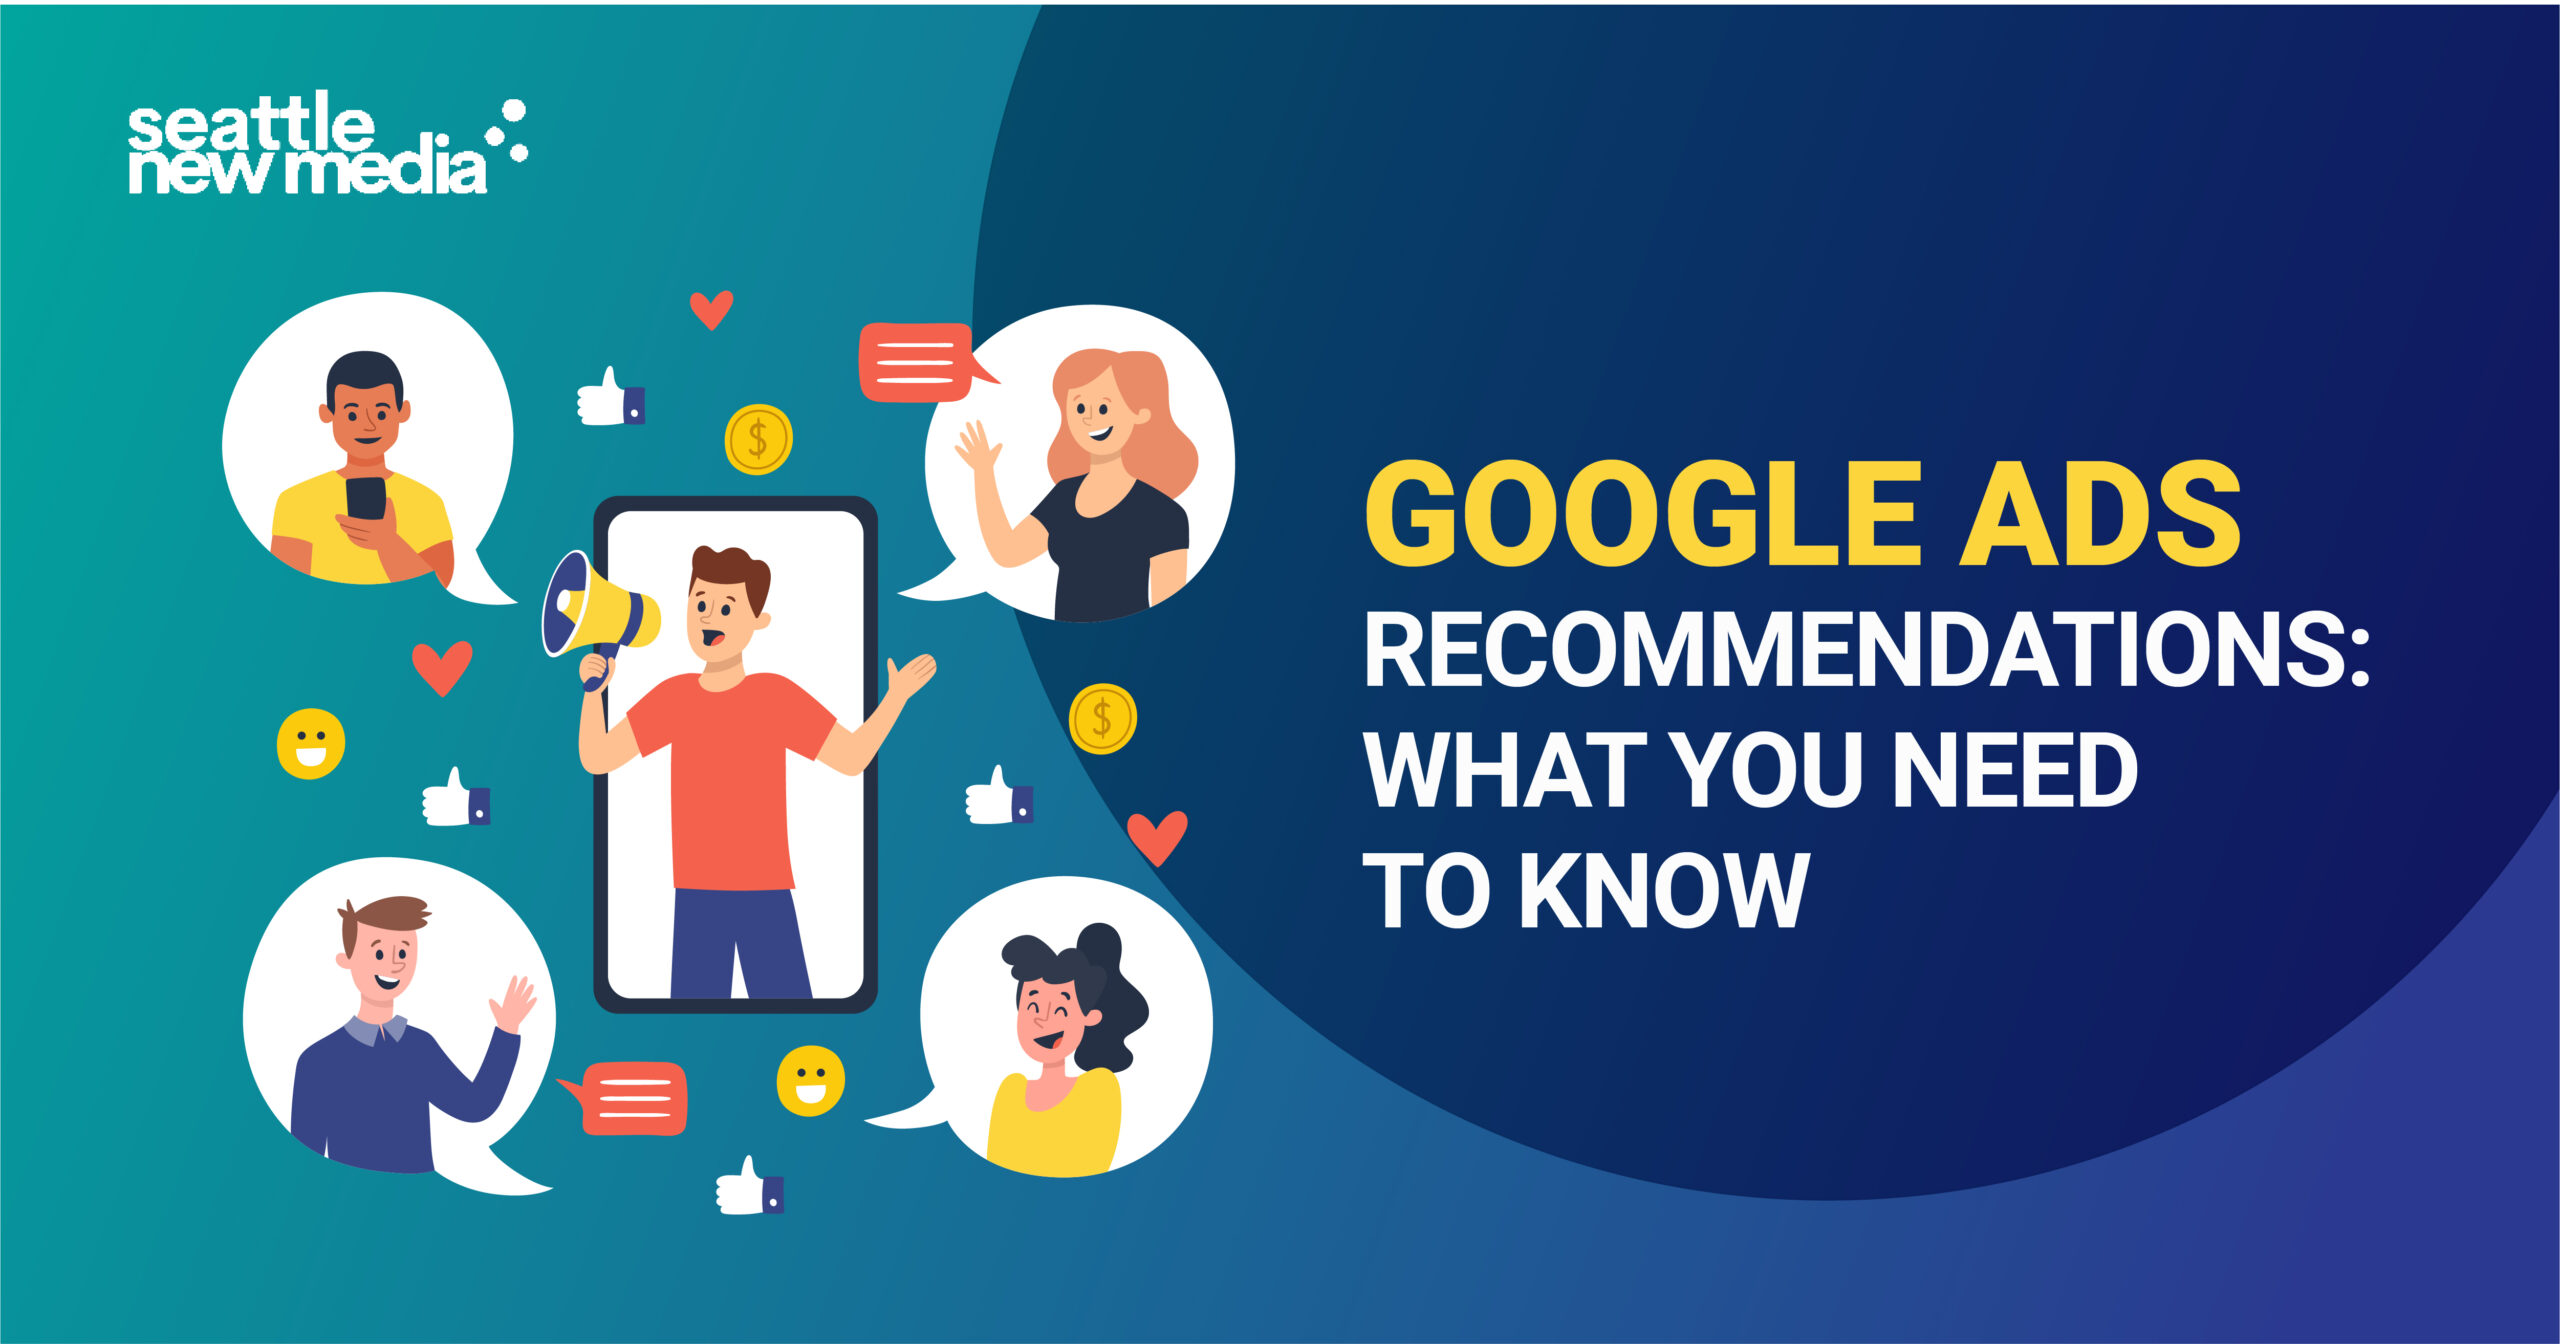 Google Ads recommendations, what you need to know